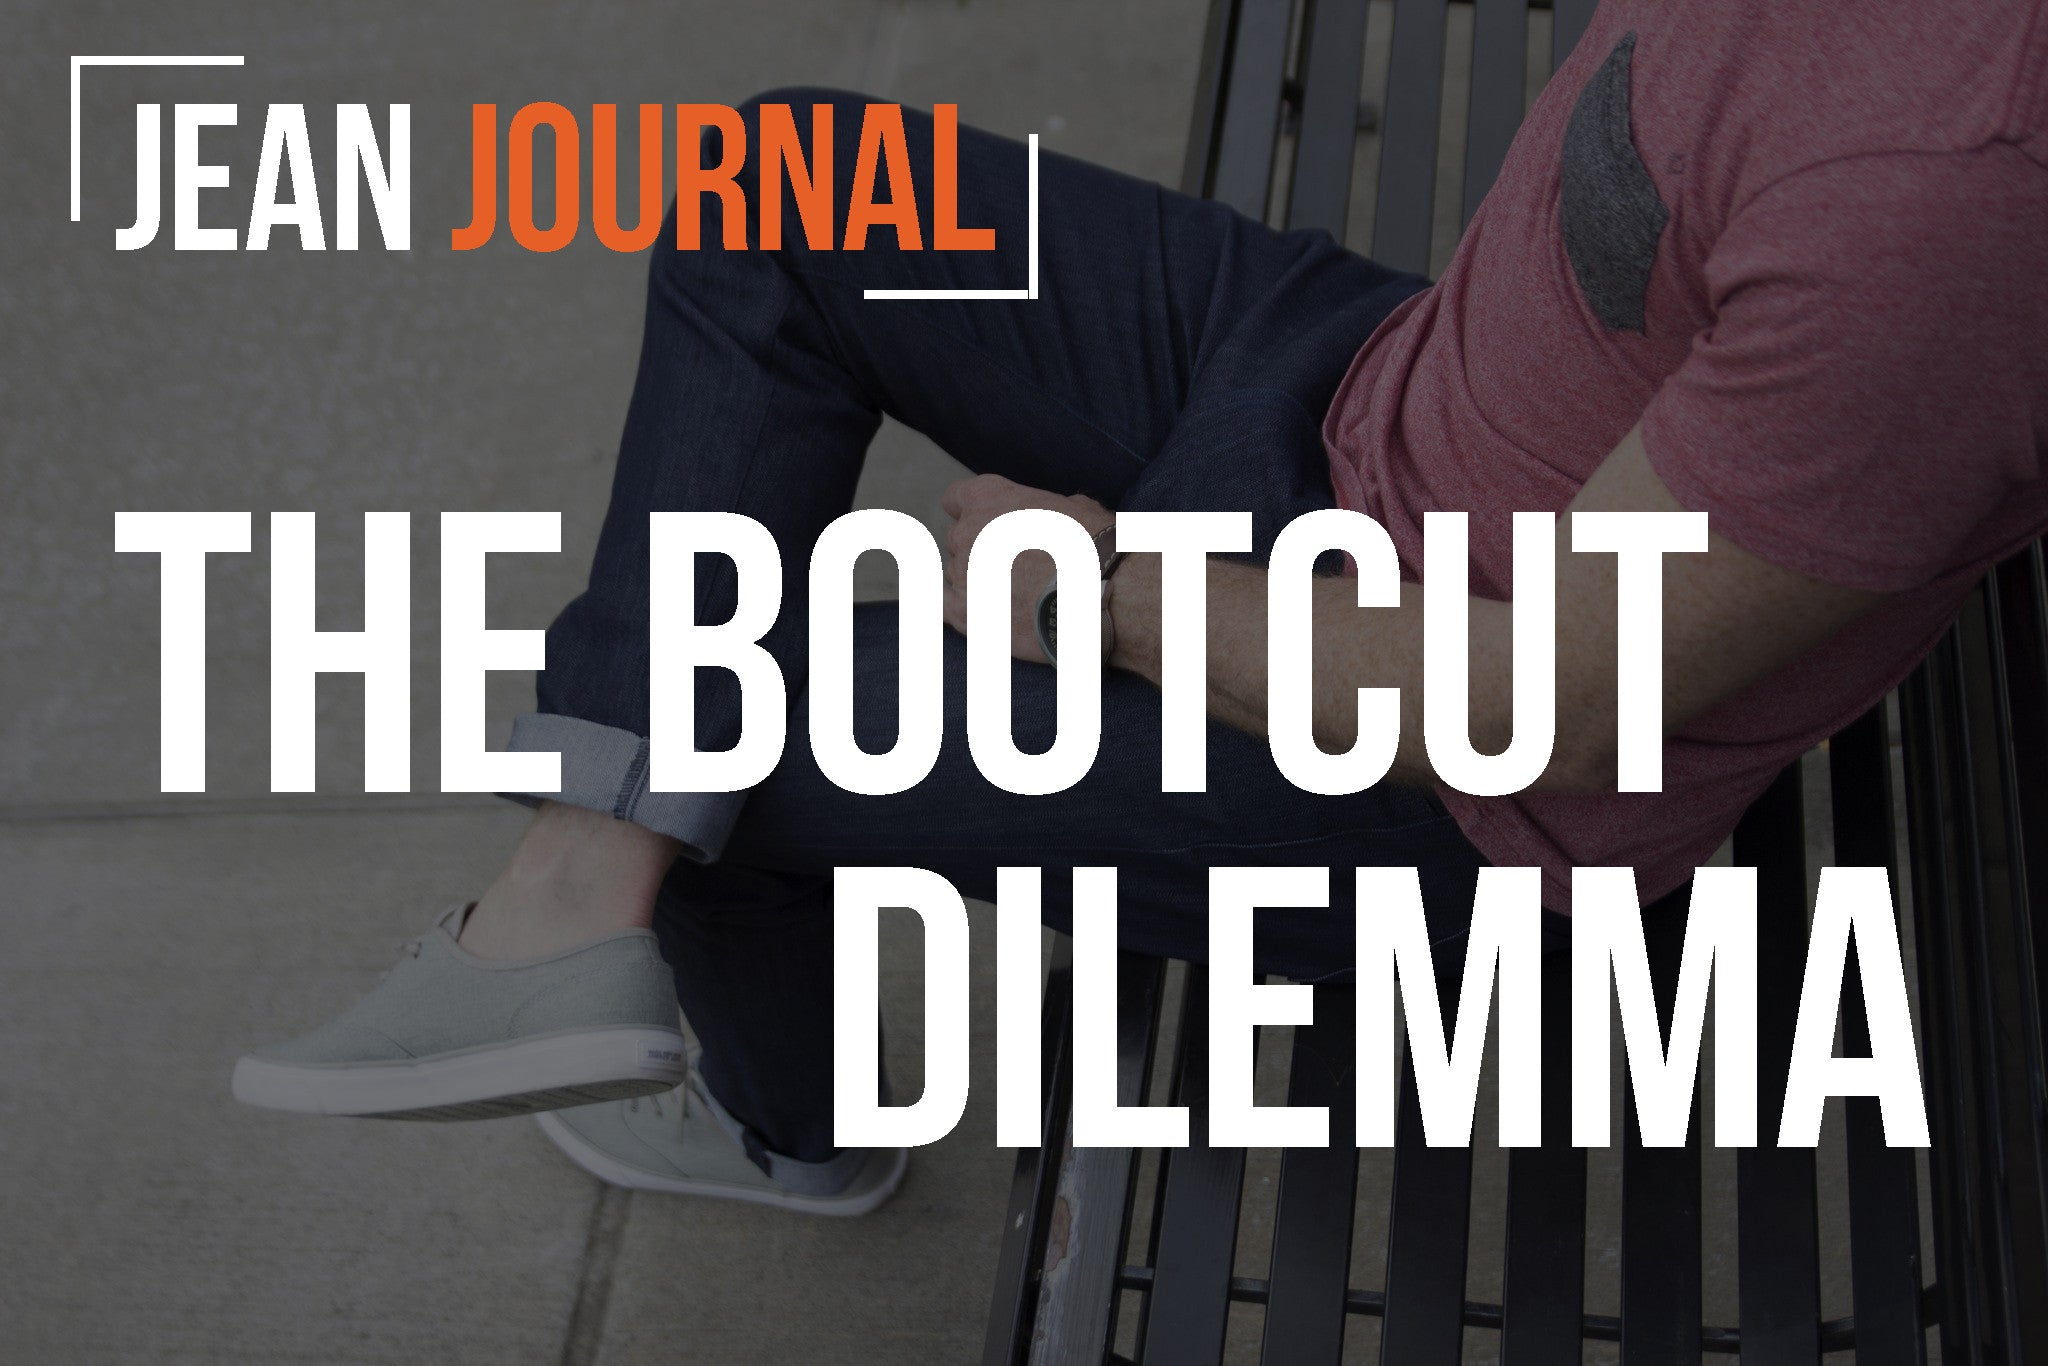 Jean Journal #1: The Bootcut Dilemma